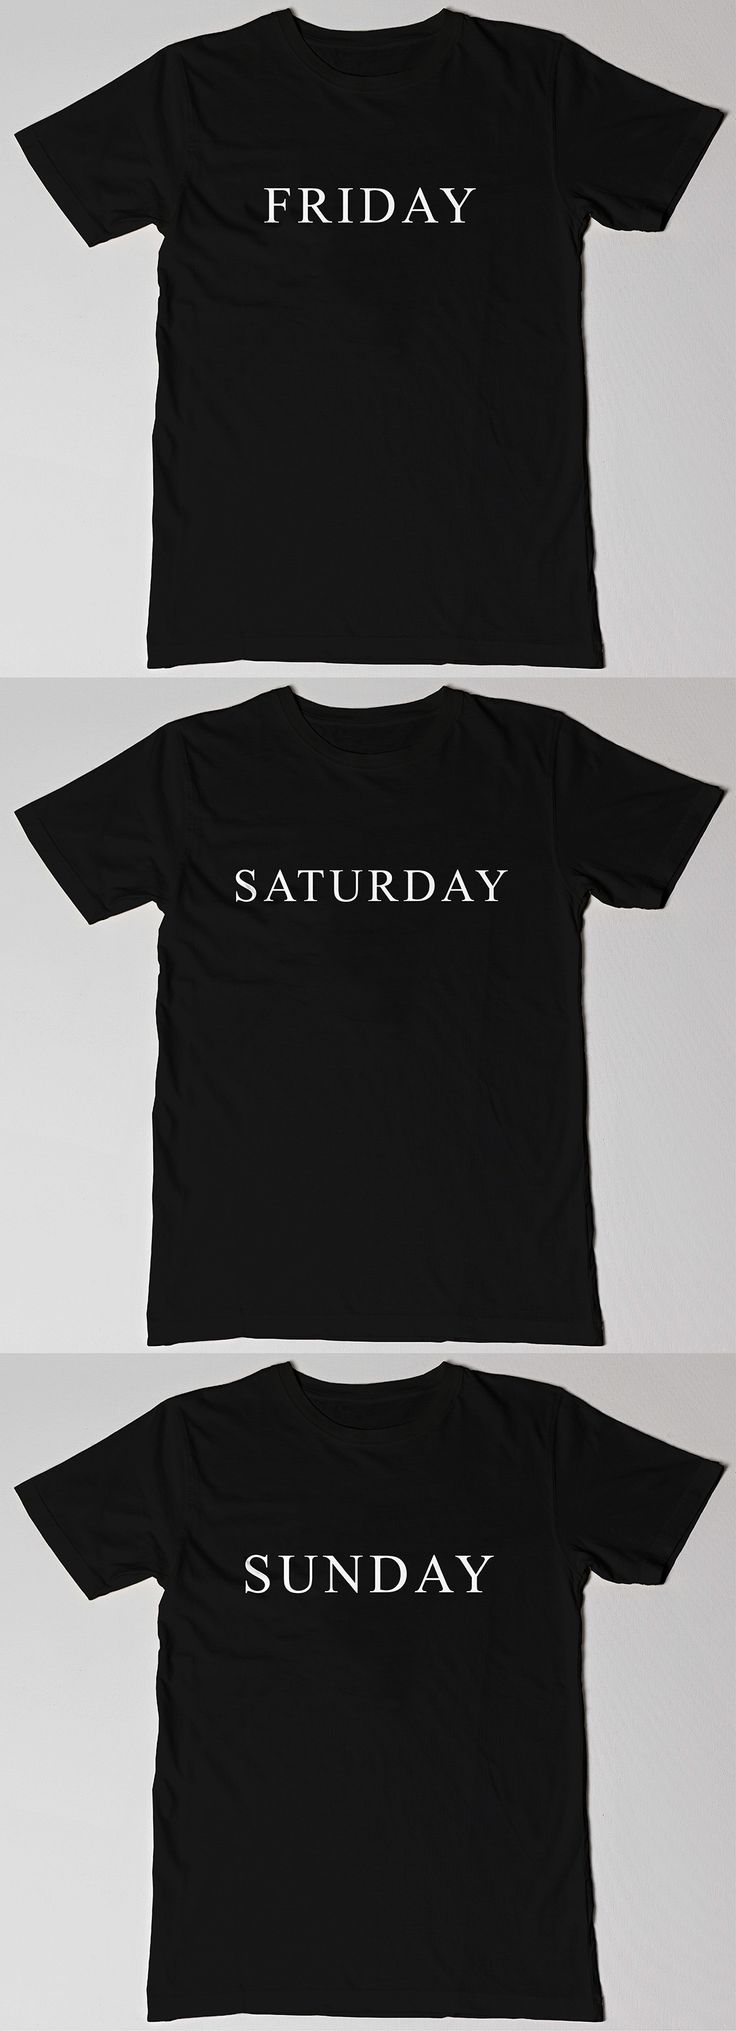 Now you can have an entire weekend of tees! Buy all 3 and get a reward! - - This and more in store! - - #weekend #friday #saturday #sunday #black #blackandwhite #tee #tshirt #blacktee #blacktshirt #slogan #slogantee #slogantshirt #sloganfashion #grunge #grungetee #grungetshirt #grungefashion #hipster #fashion #blog #blogger